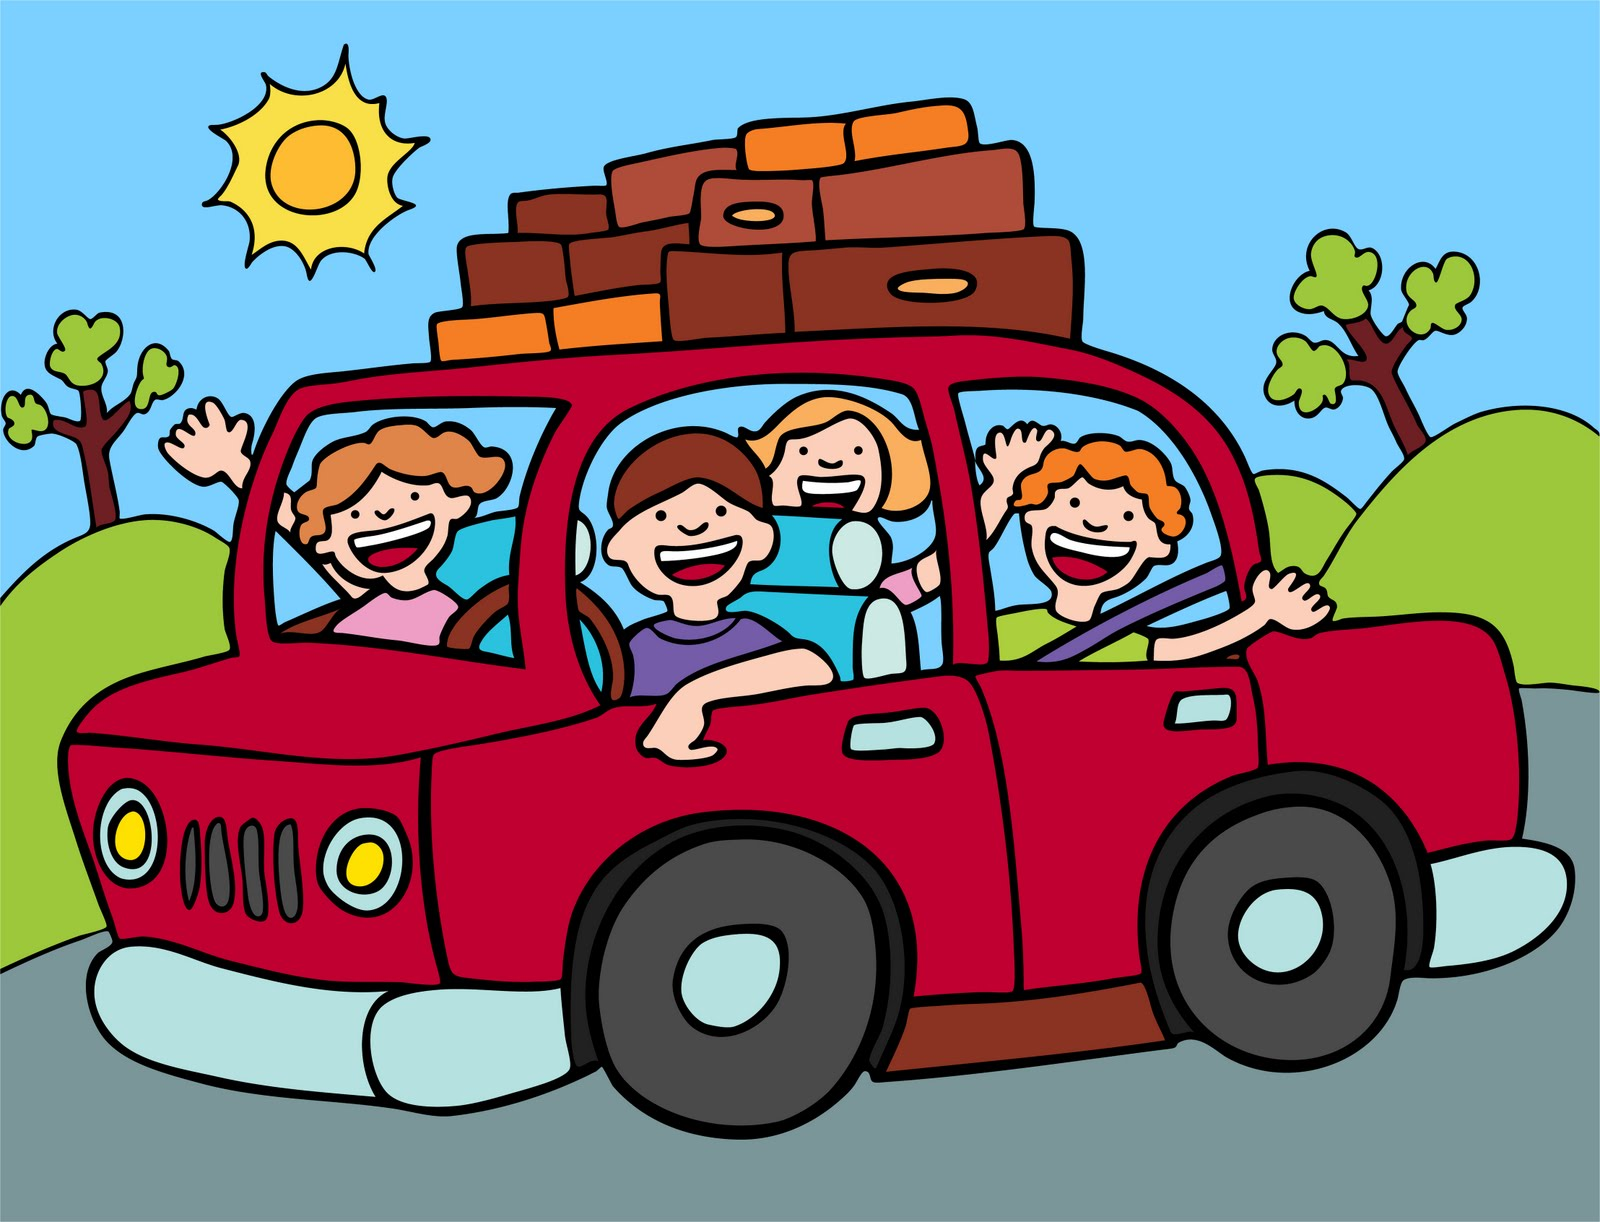 Vacation clipart road trip Travel clipart Traveling clip car